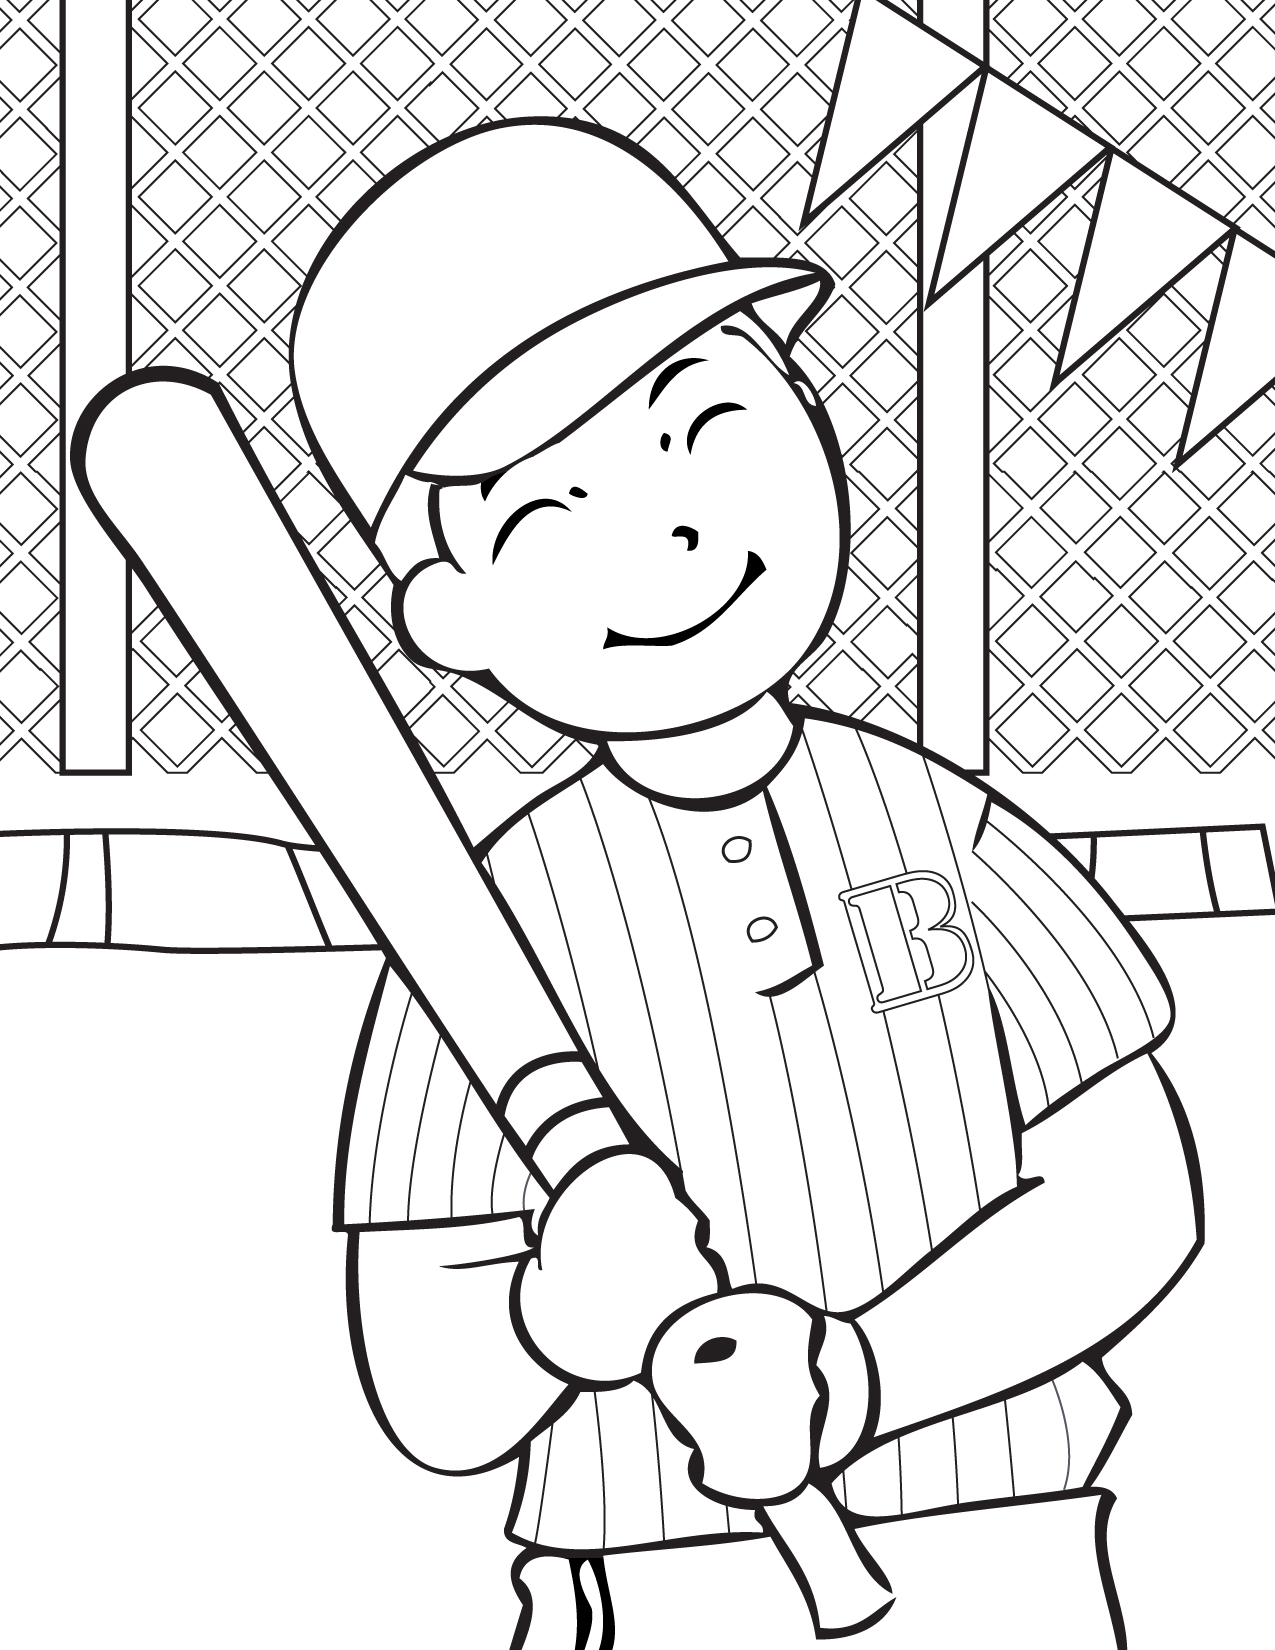 printable baseball coloring pages,printable,coloring pages